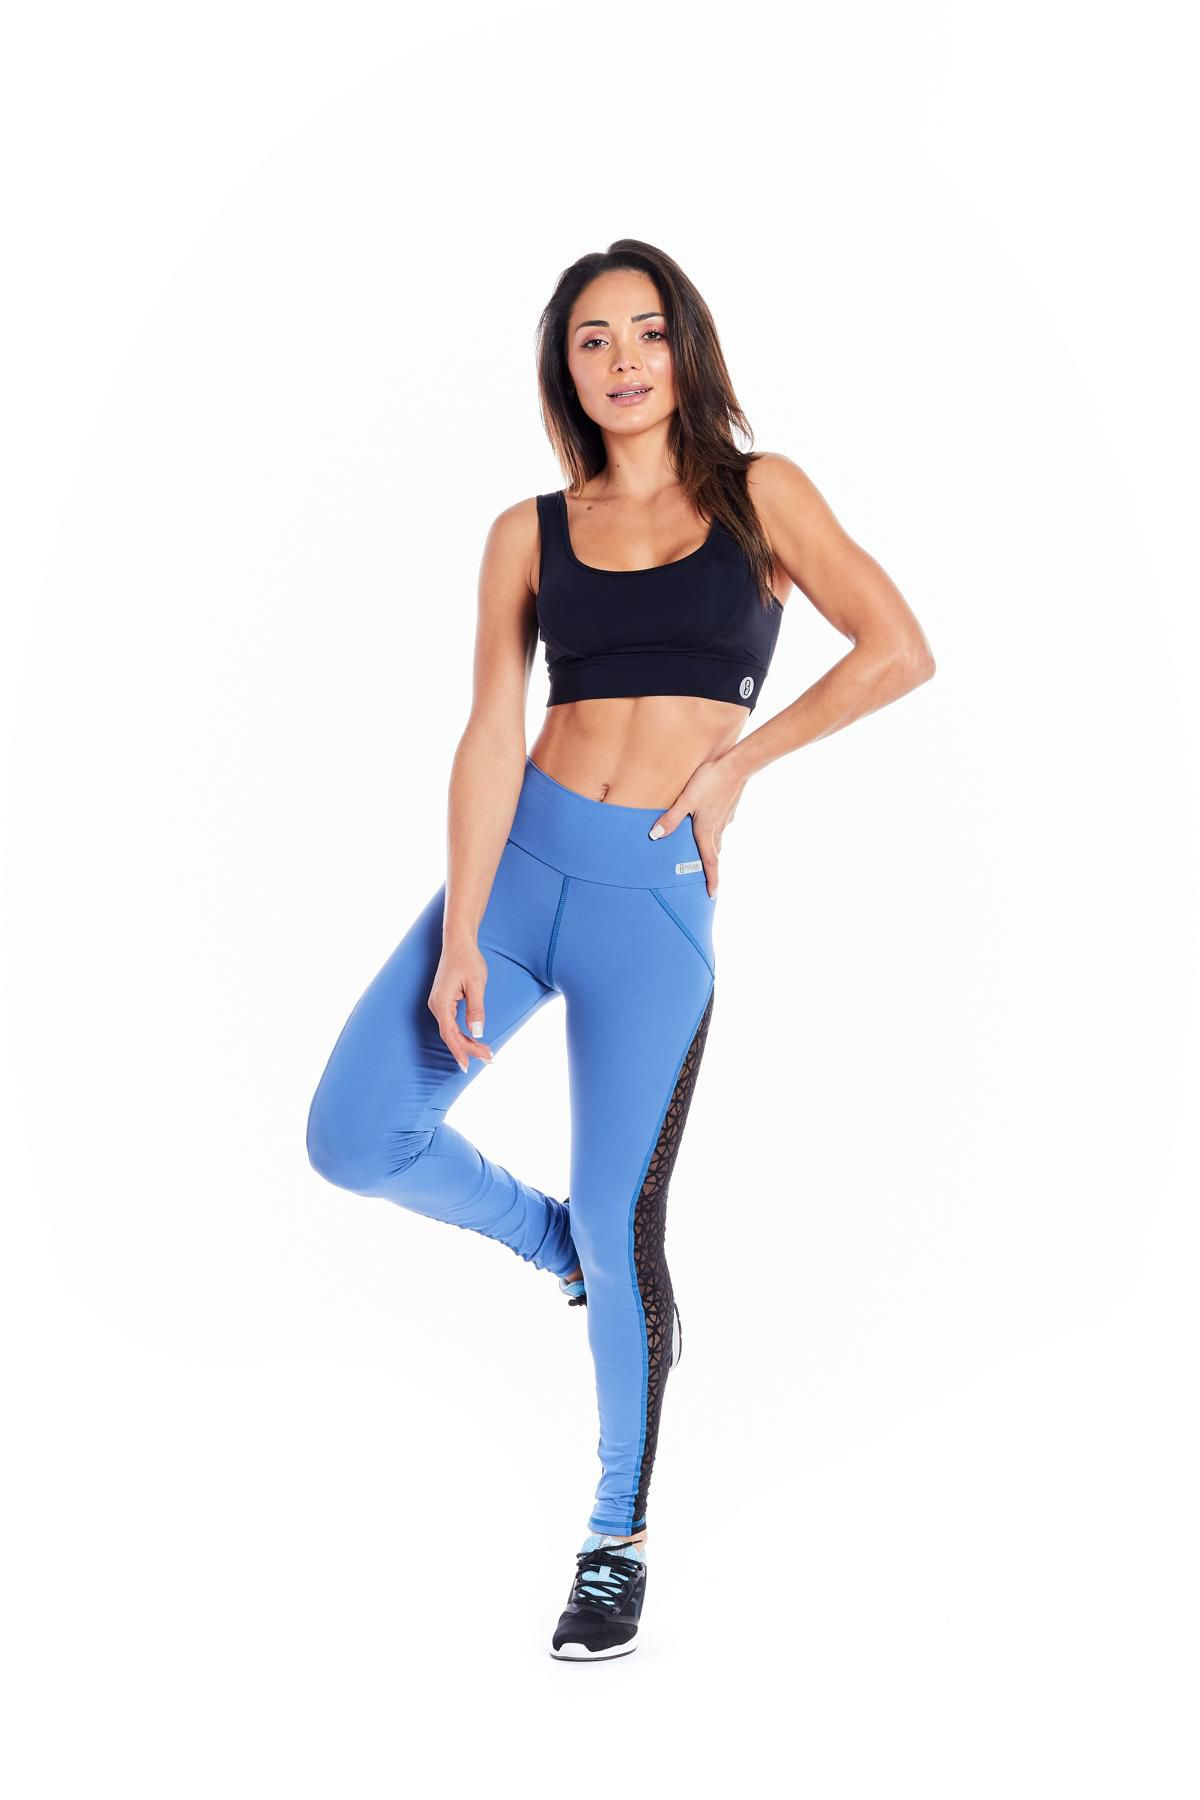 LEGGING BLACK NIGHT - AZUL